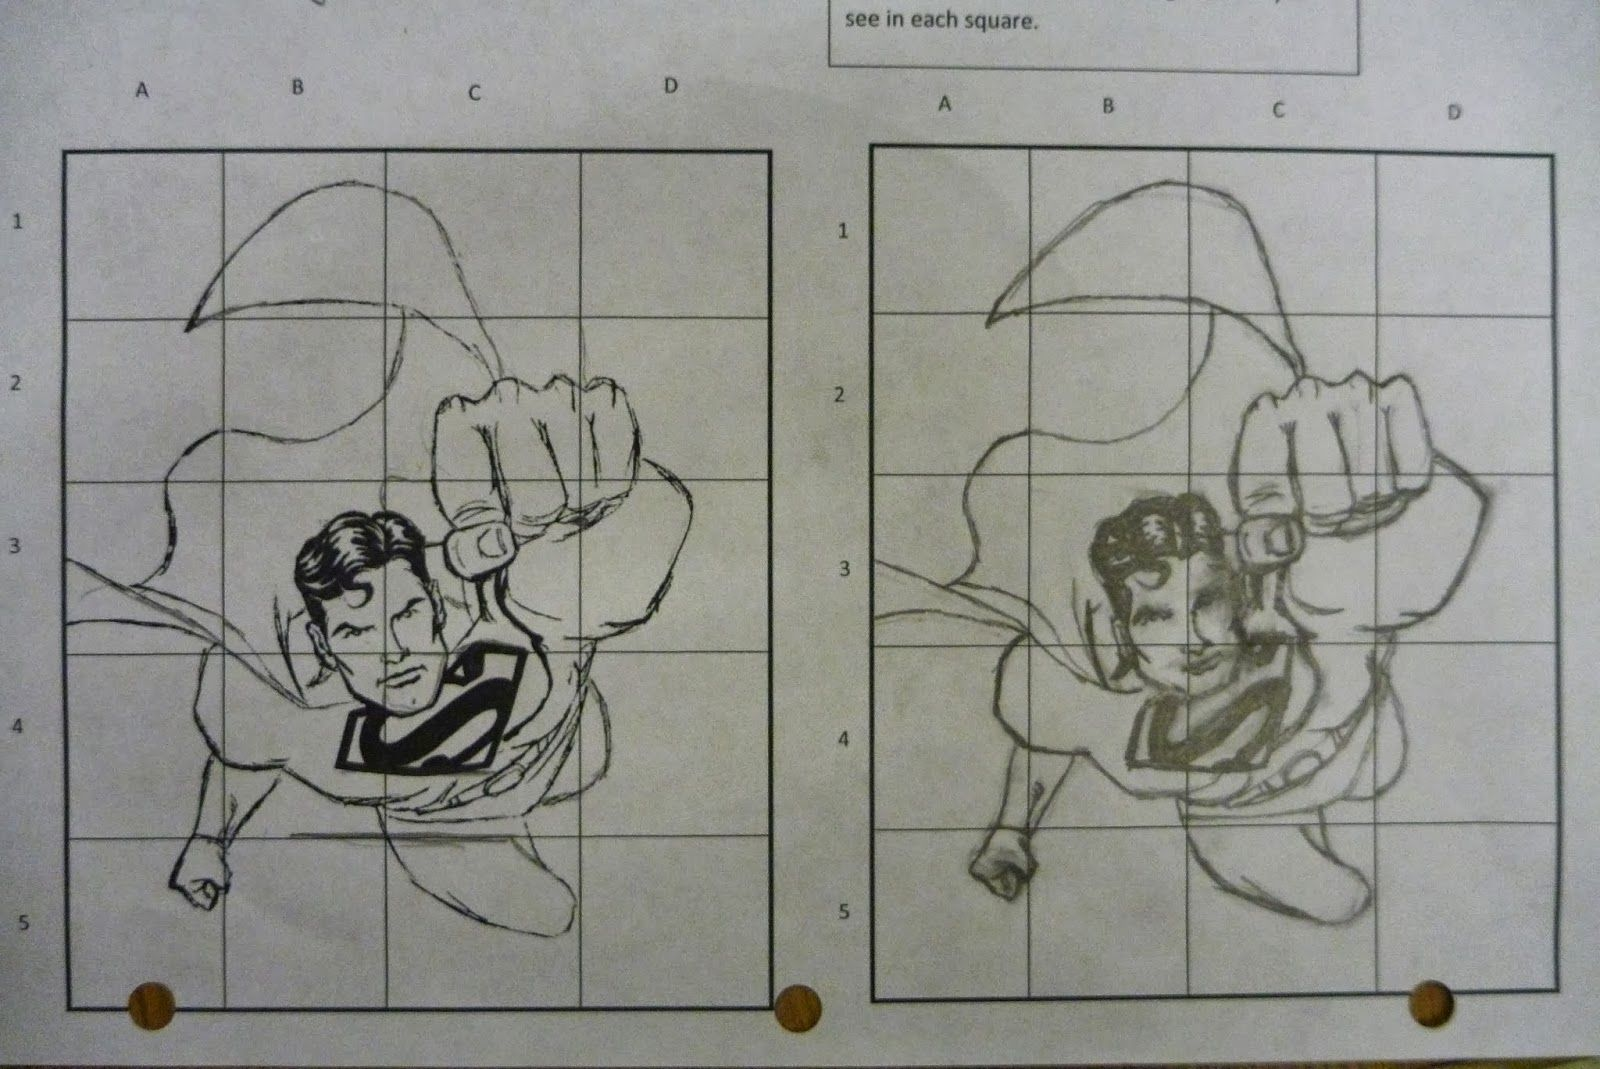 Drawing Lines Of Symmetry On Shapes Worksheet : Superhero grid drawing or paint a superhero that exists